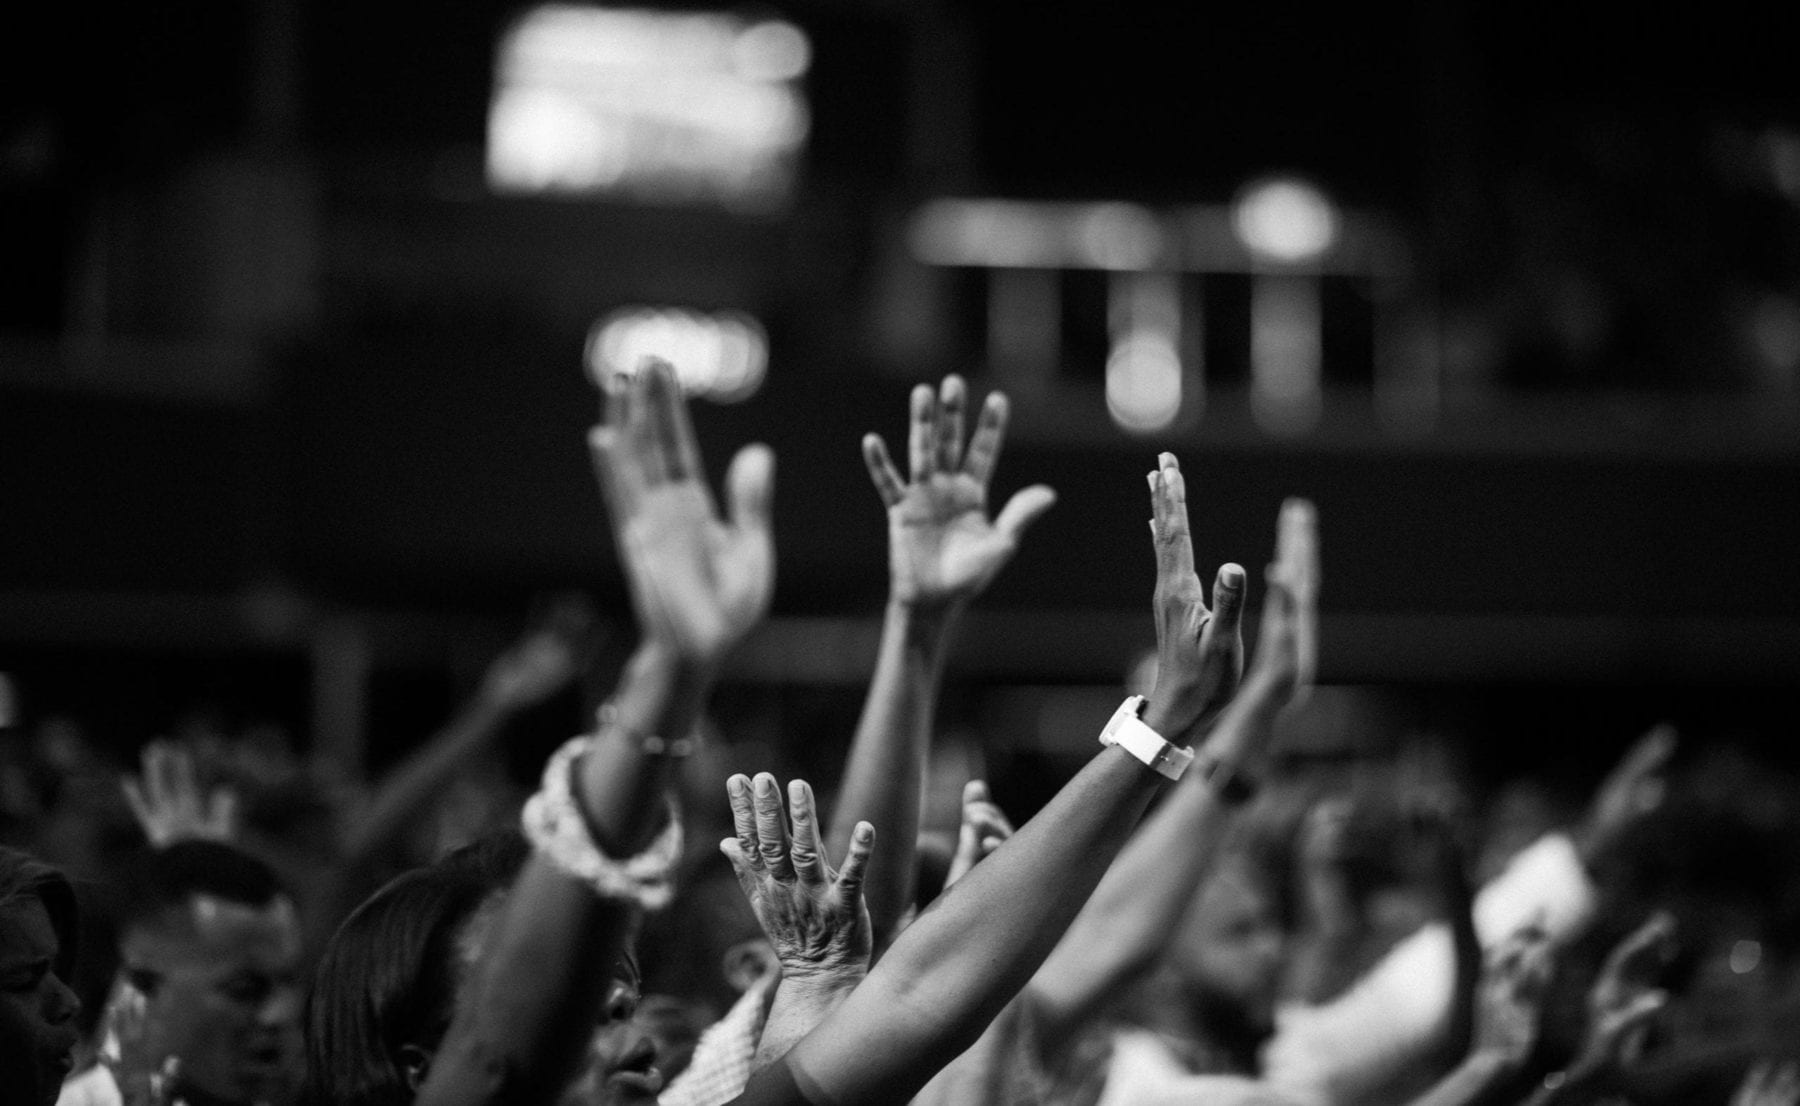 People raising hands image